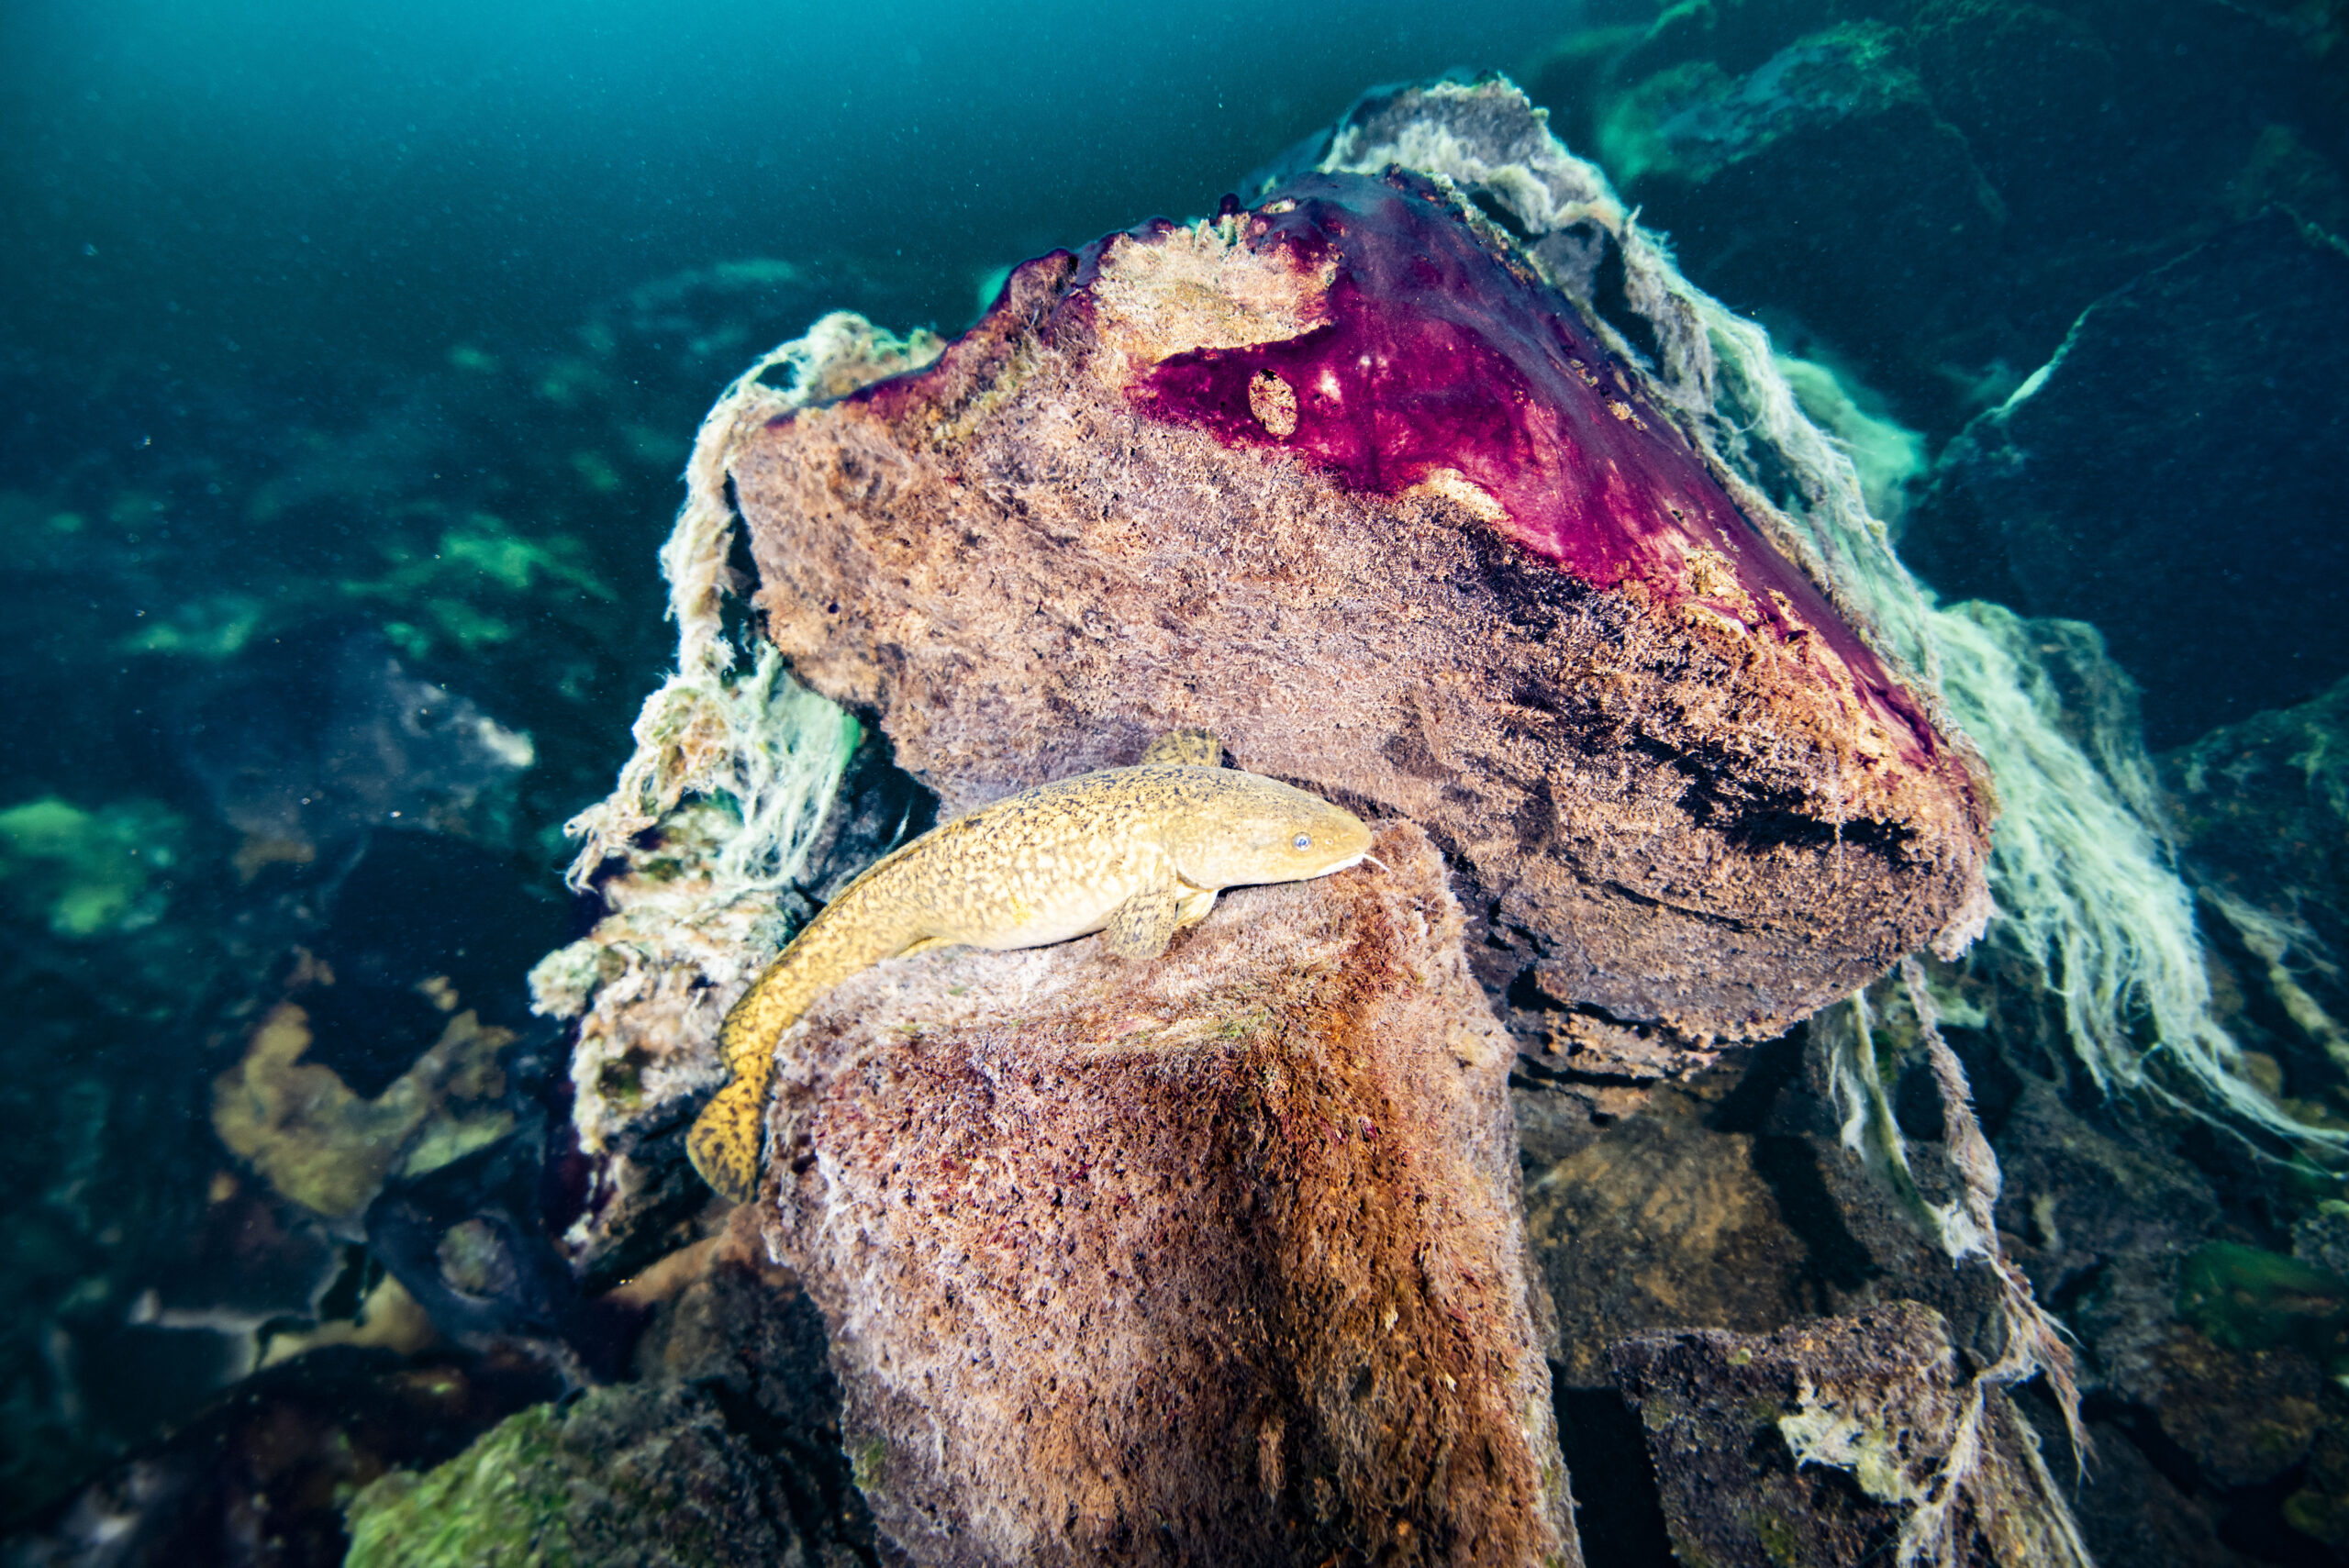 A burbot fish resting on rocks covered in purple and white microbial mats inside the Middle Island Sinkhole in Lake Huron. Photo credit: Phil Hartmeyer, NOAA Thunder Bay National Marine Sanctuary.